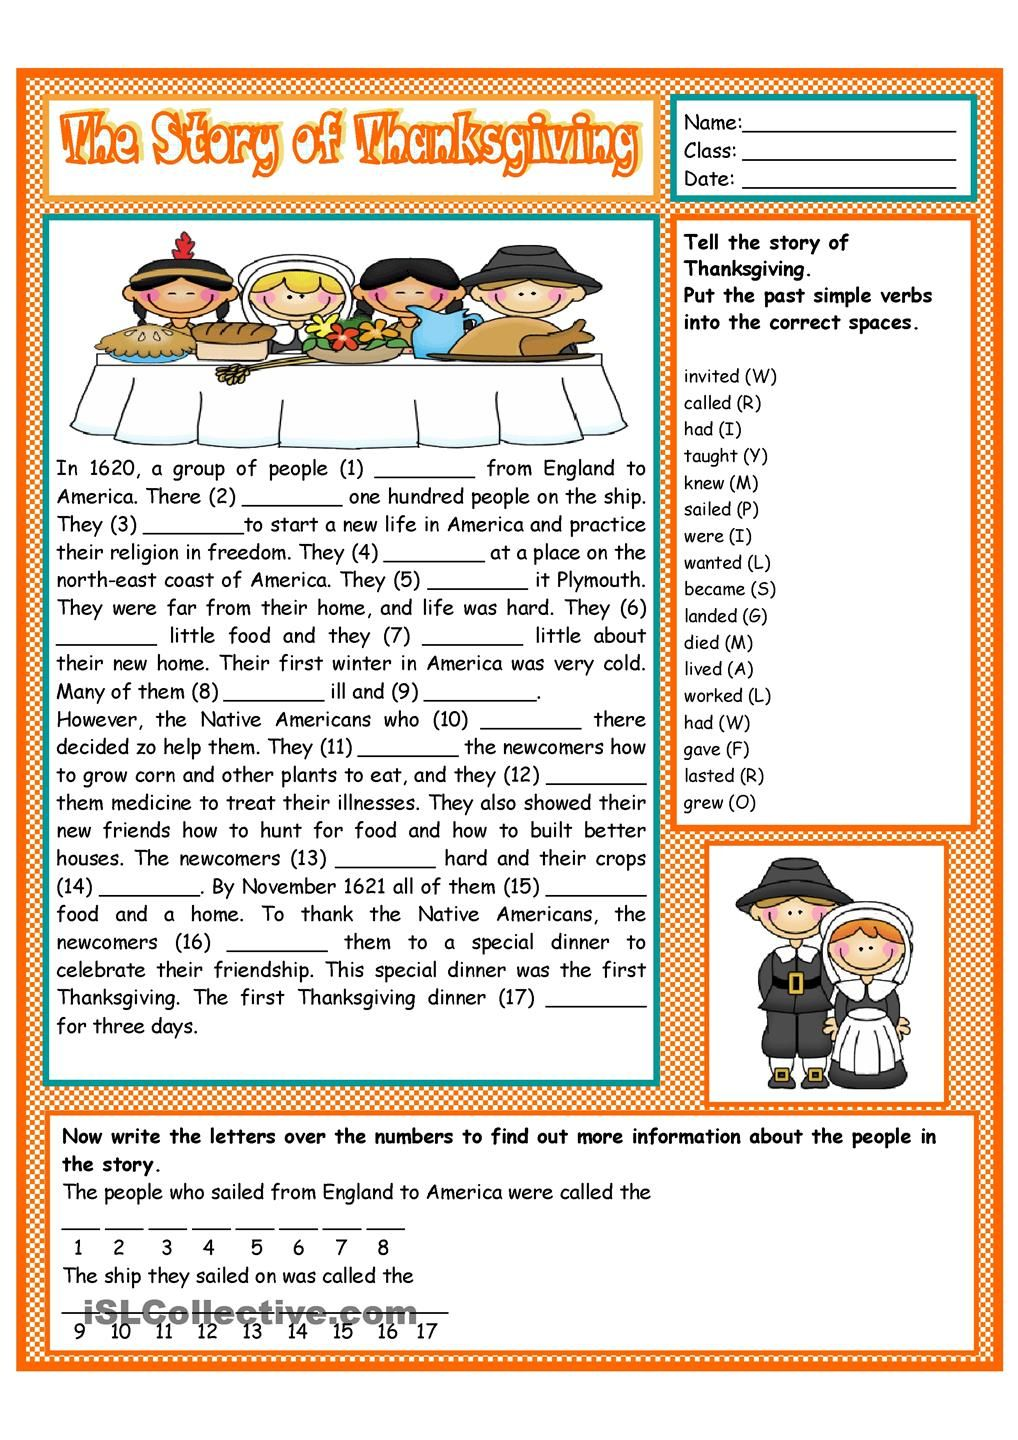 hight resolution of The Story of Thanksgiving   Thanksgiving reading comprehension